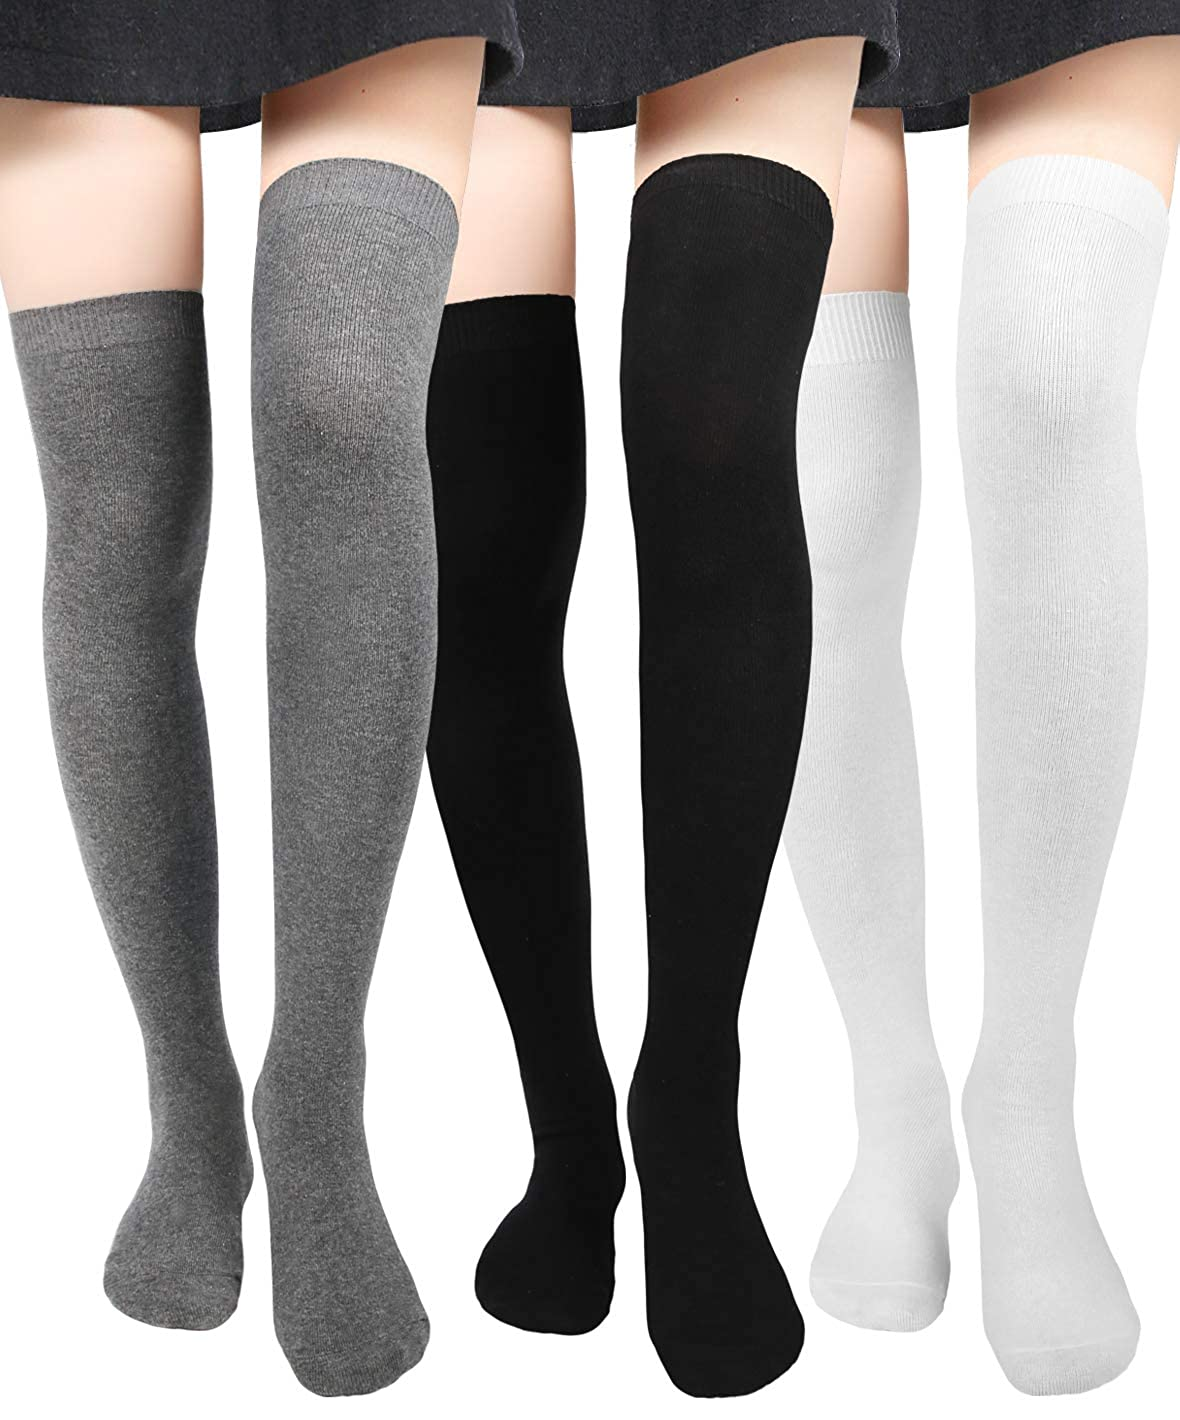 cc1769f79 Thigh High Socks for Women Girls Over the Knee Stockings Long Tall Cotton  Thin Leg Warmers